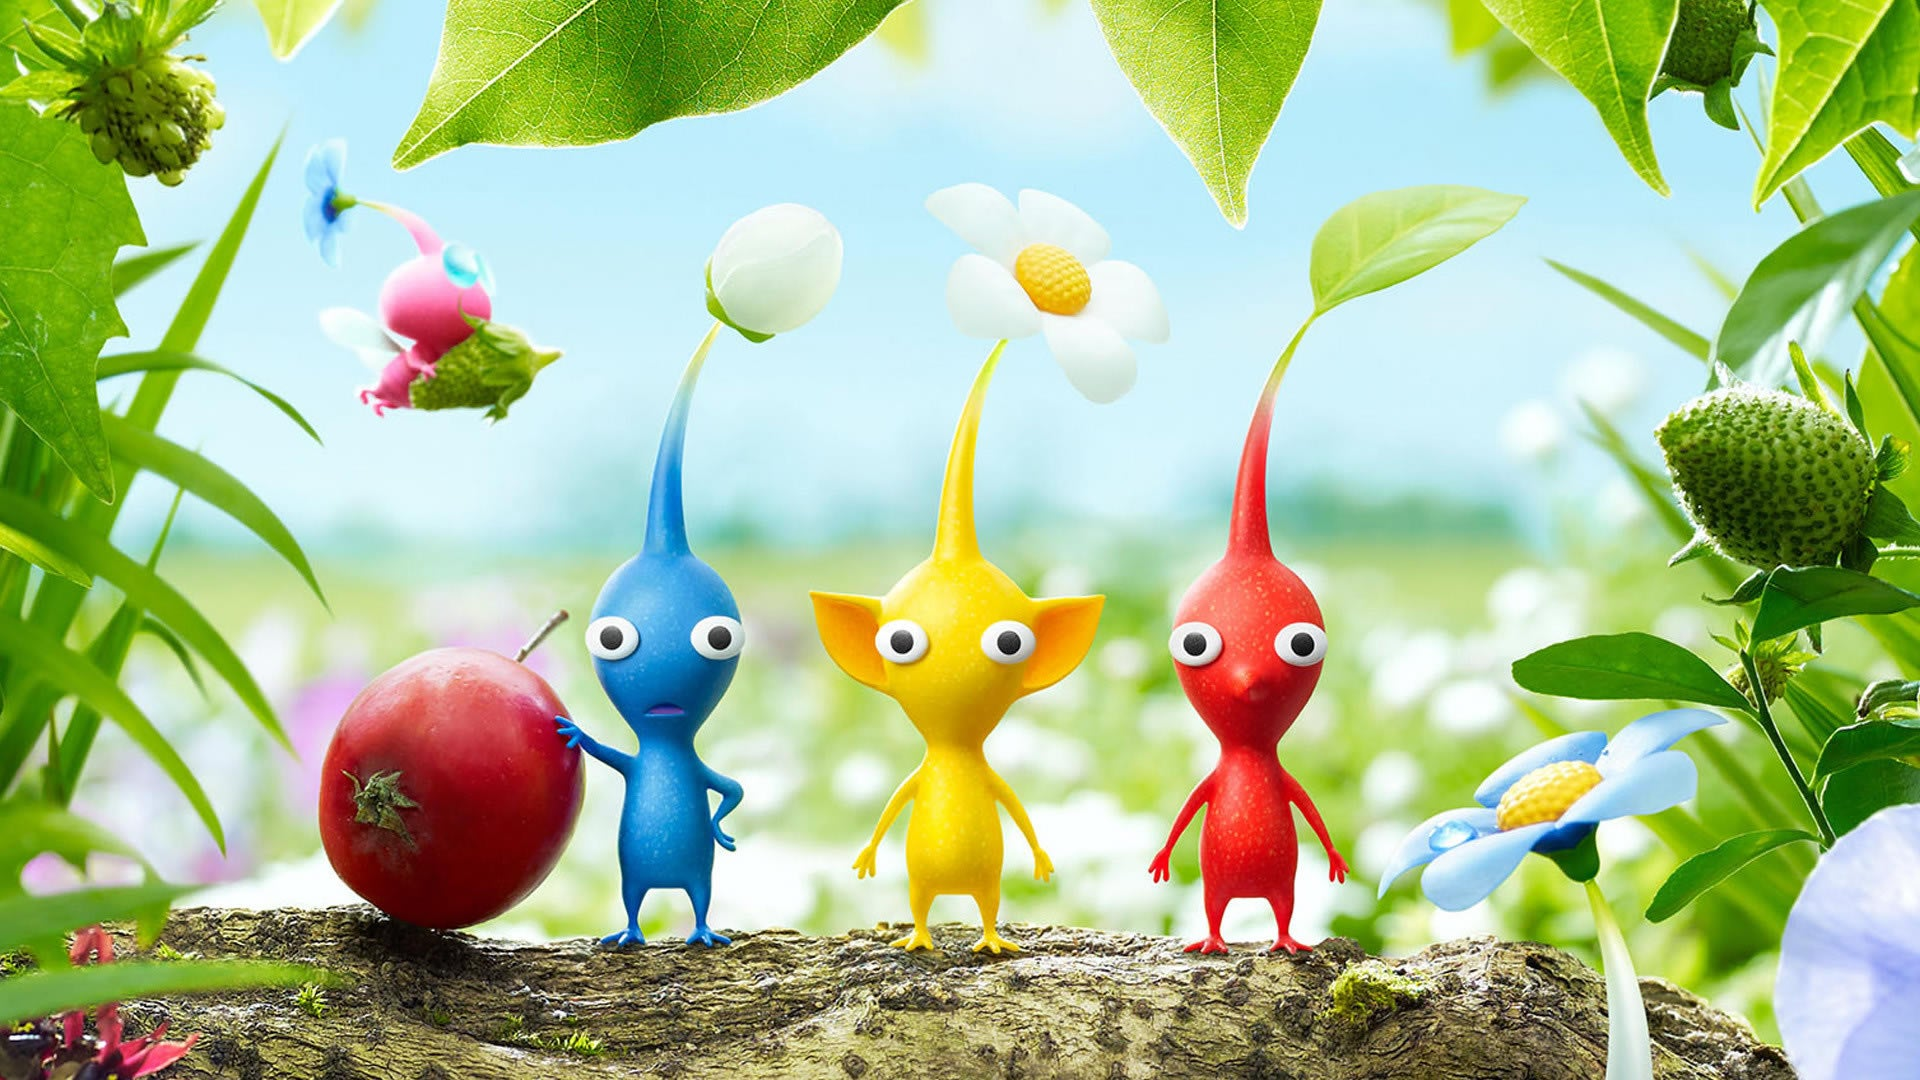 pikmin 3 deluxe announced for nintendo switch e4f4